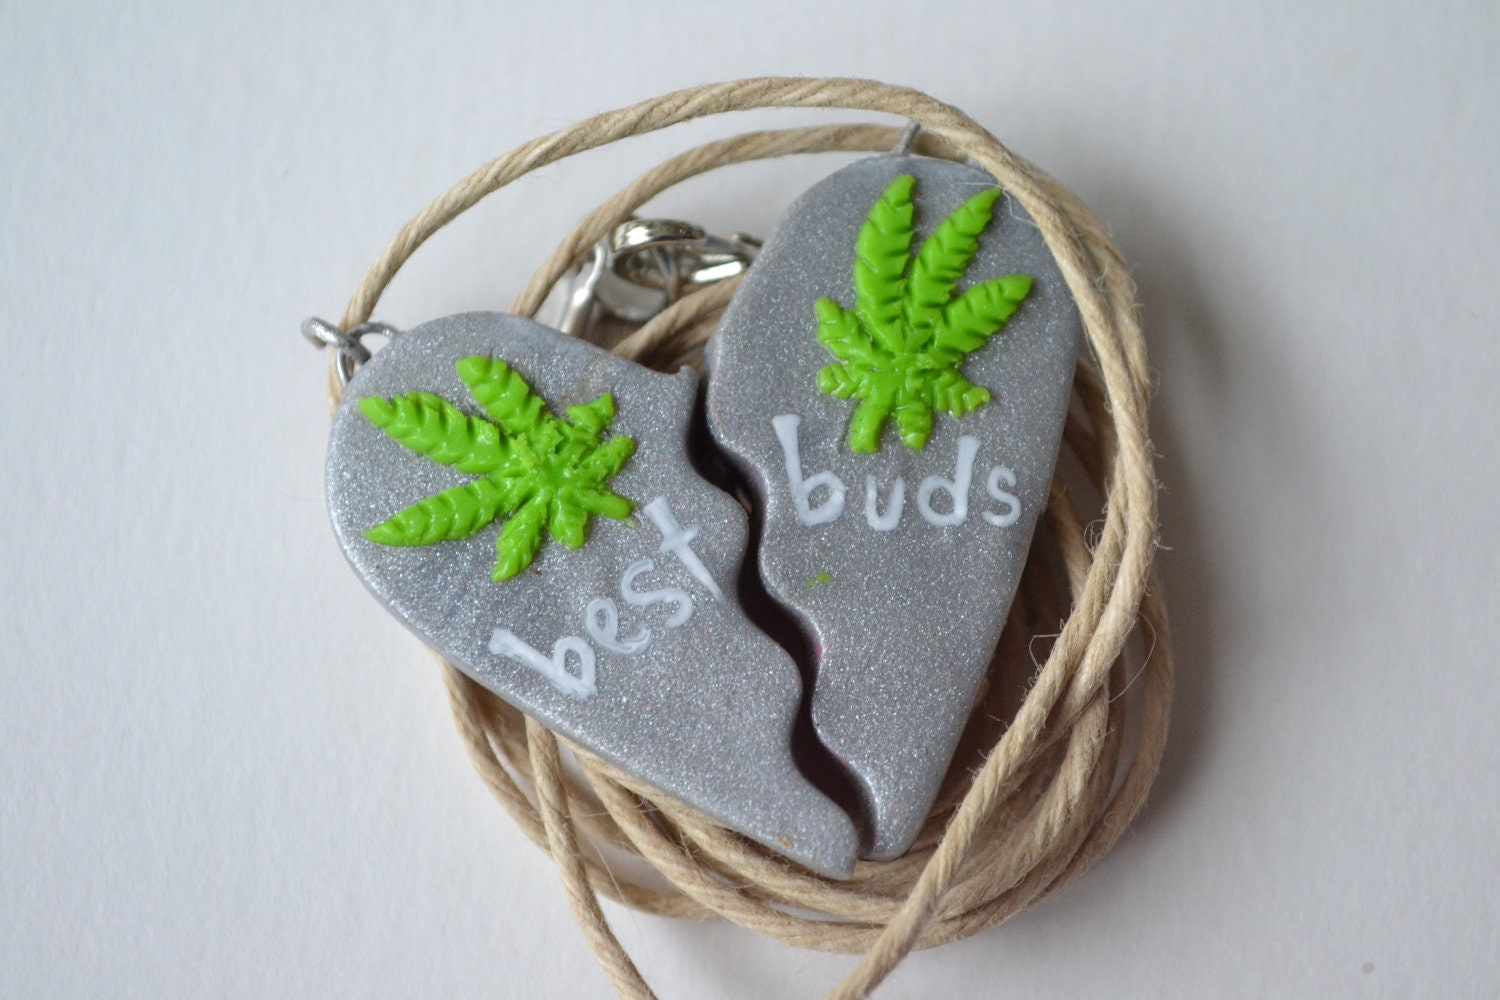 metallic best buds necklaces fully customizable by